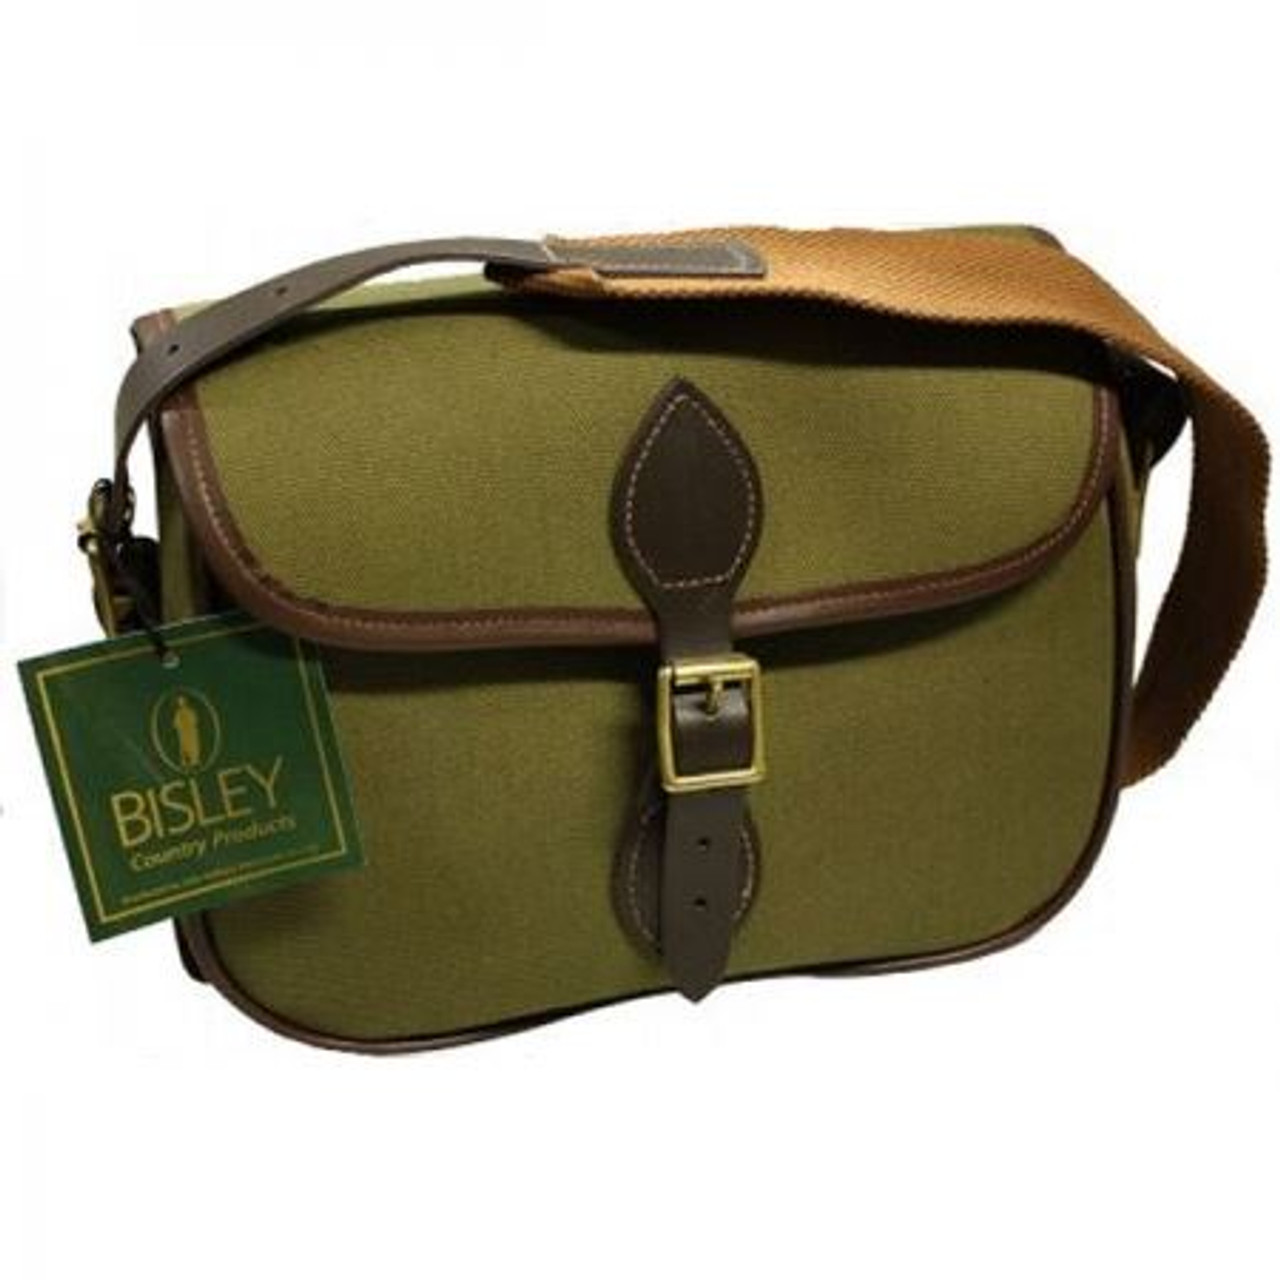 Bisley Economy Cartridge Bag 100